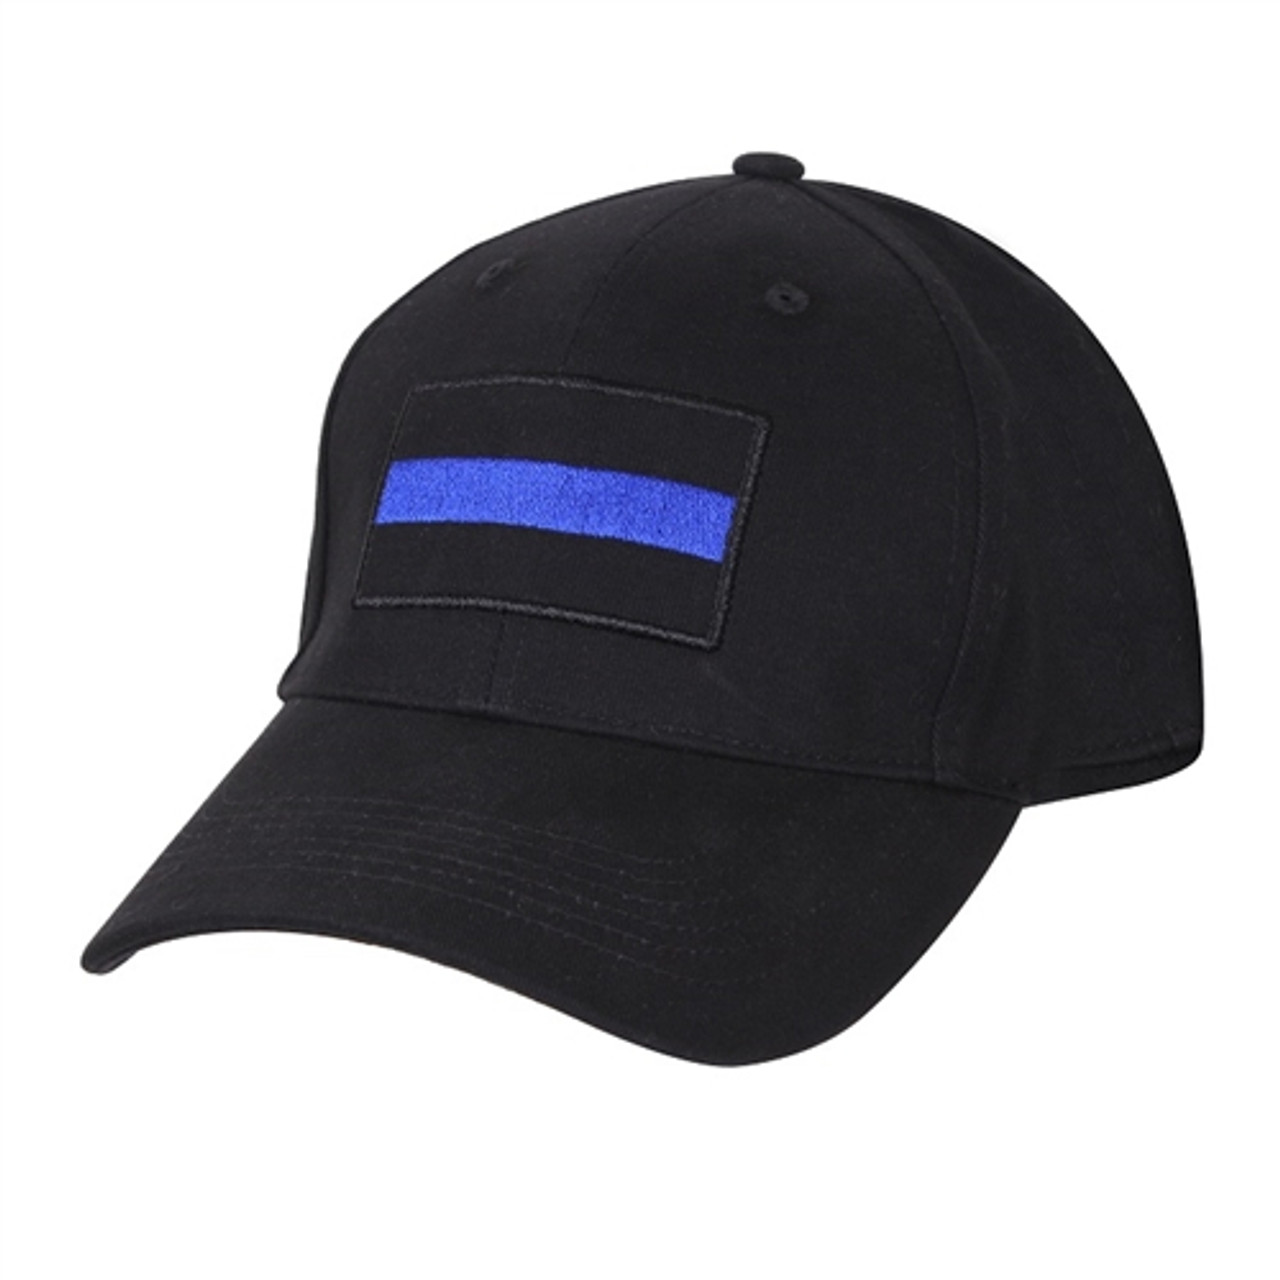 Thin Blue Line Low Profile Cap from Hessen Tactical.